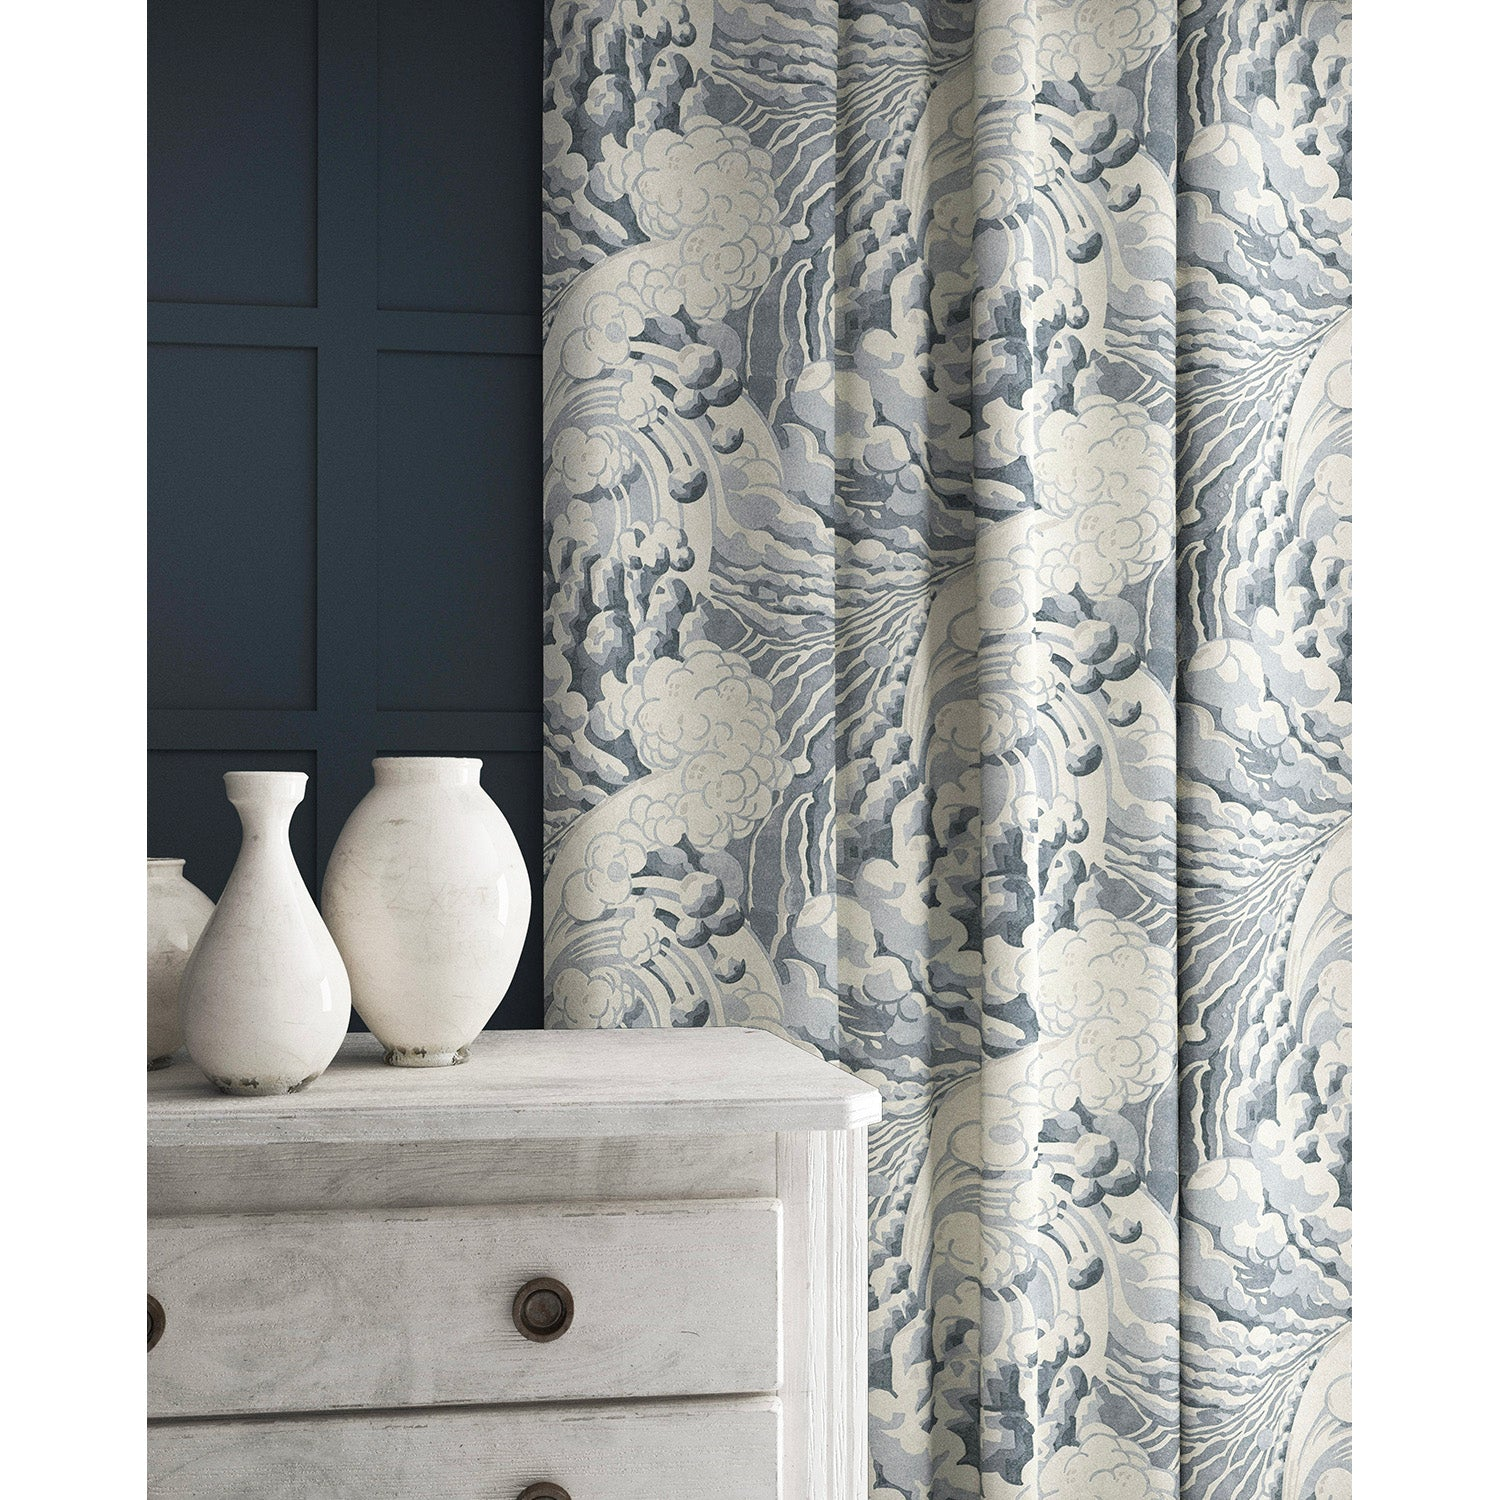 Velvet curtain in a velvet fabric with stain resistant finish with a grey and white wave design